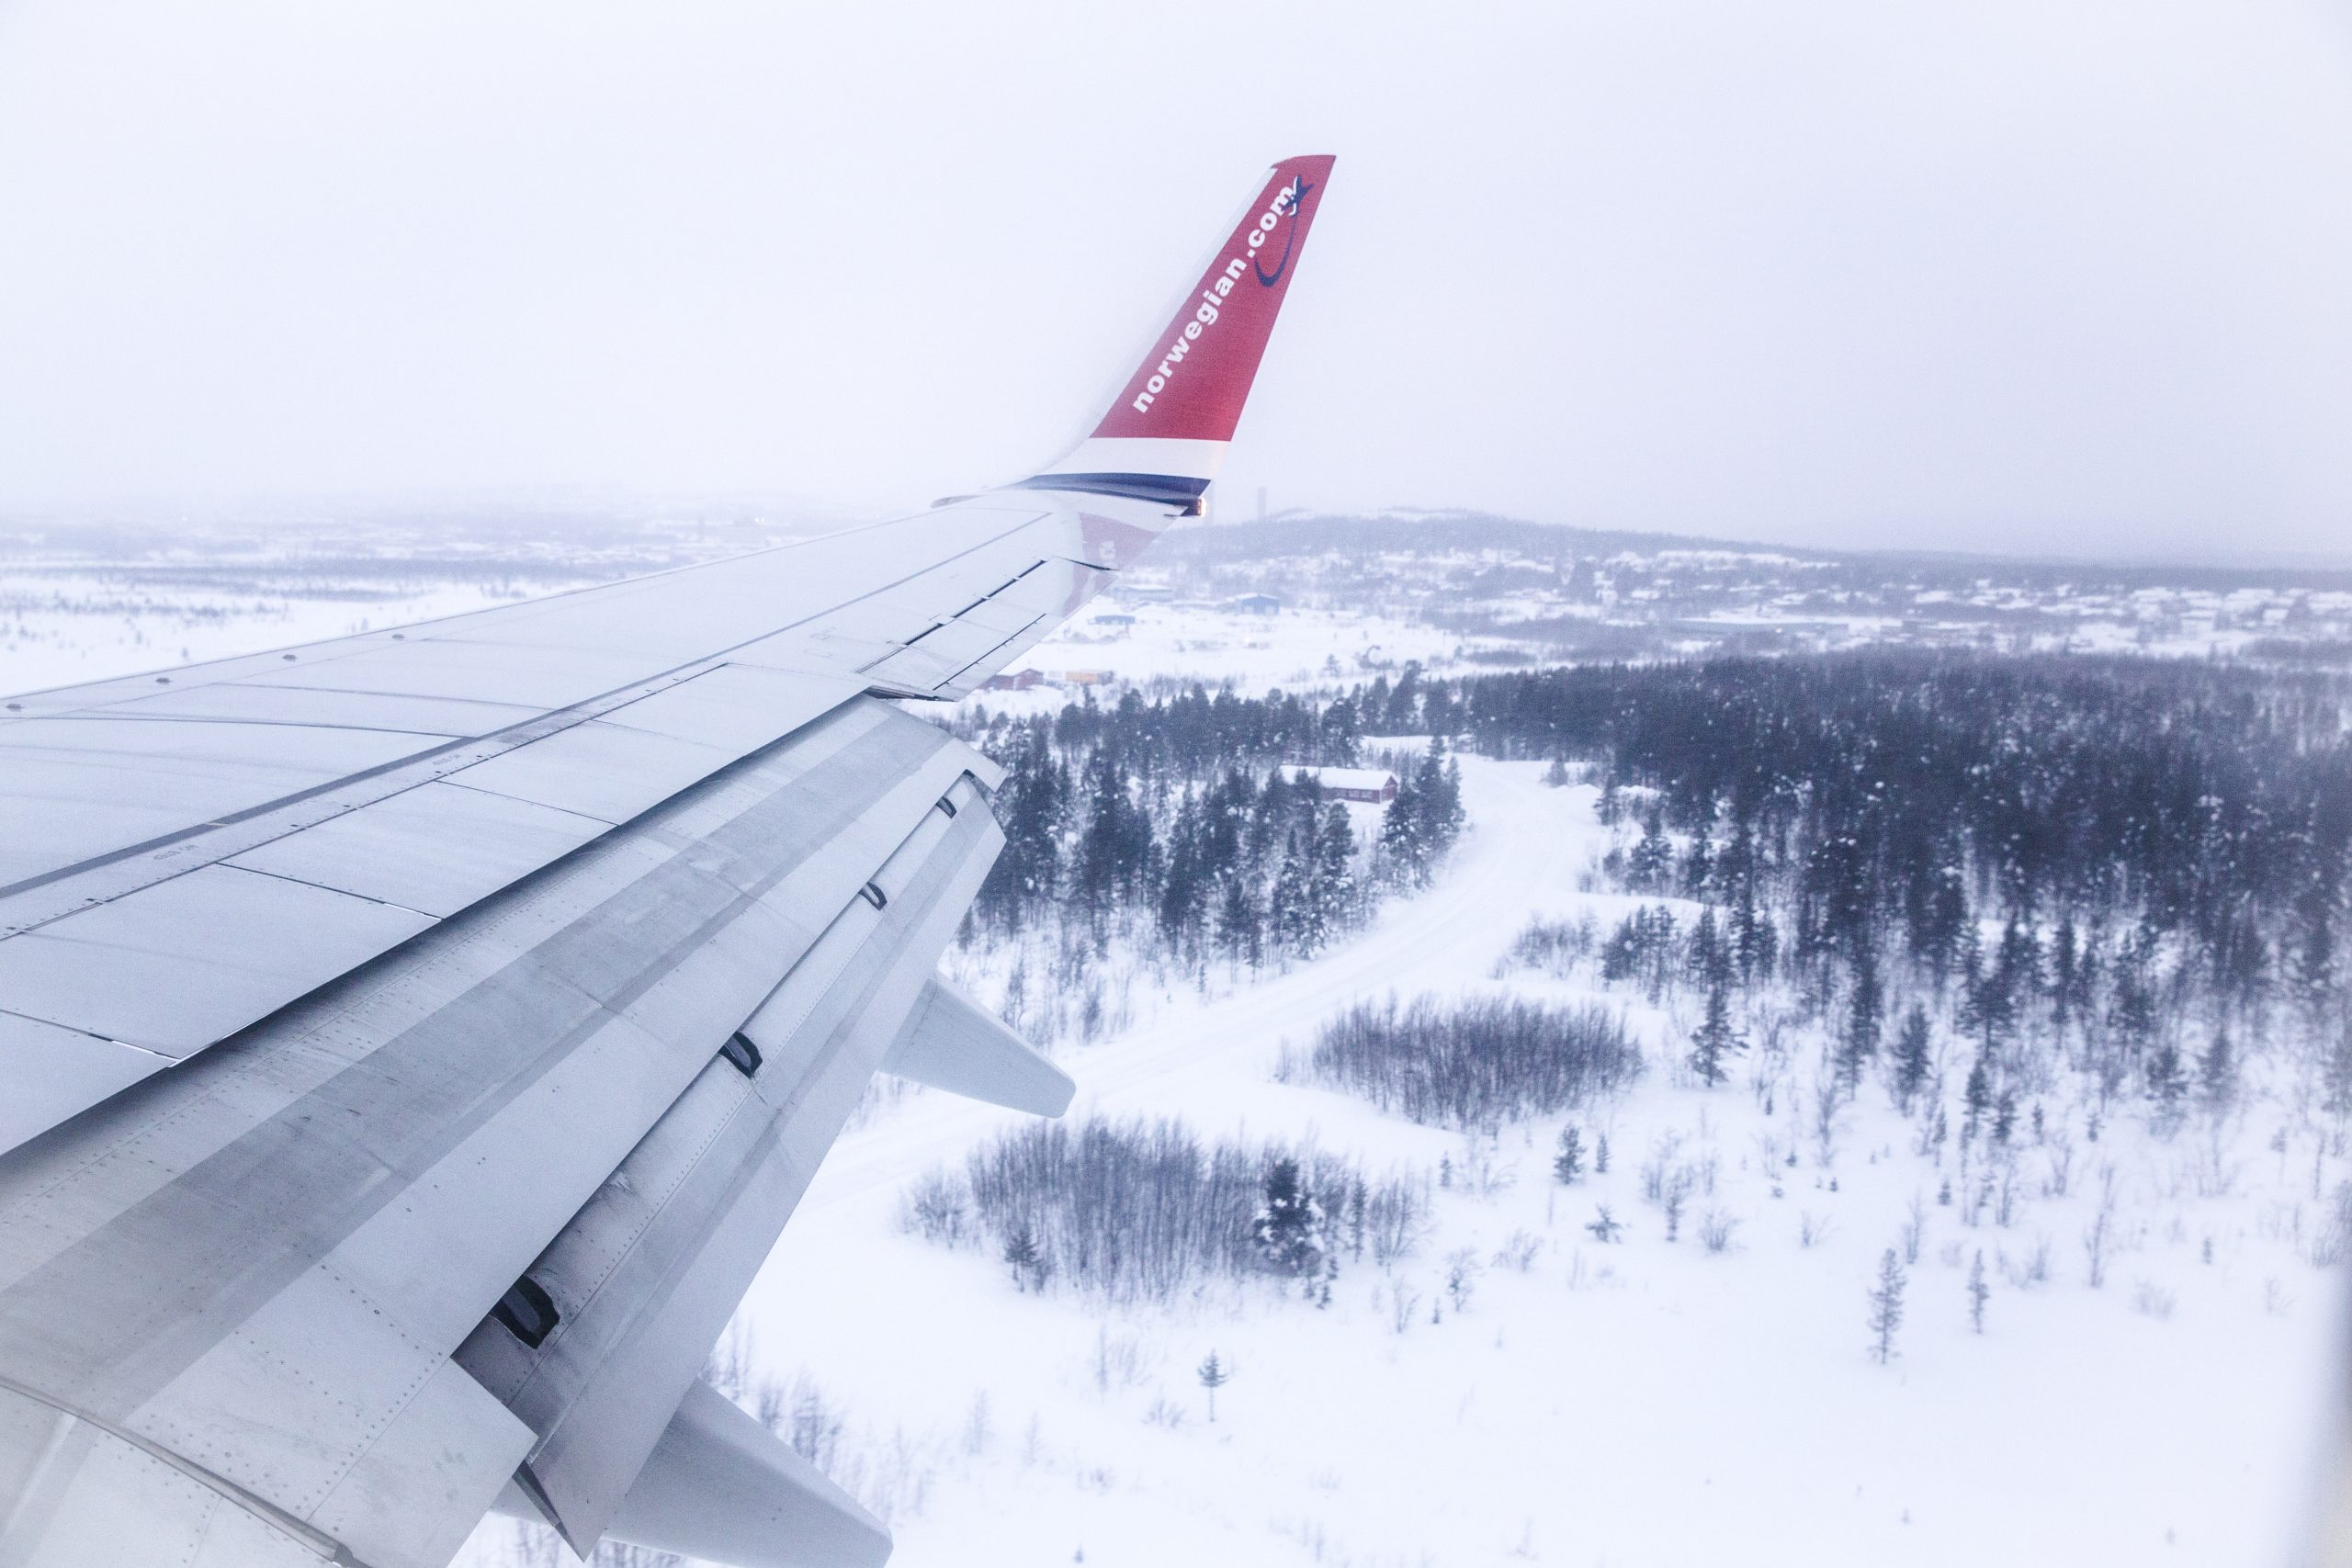 """View form airplane window, showing an airplane wing with """"Norwegian"""" written on it, overlooking a snowy landscape with trees in winter."""